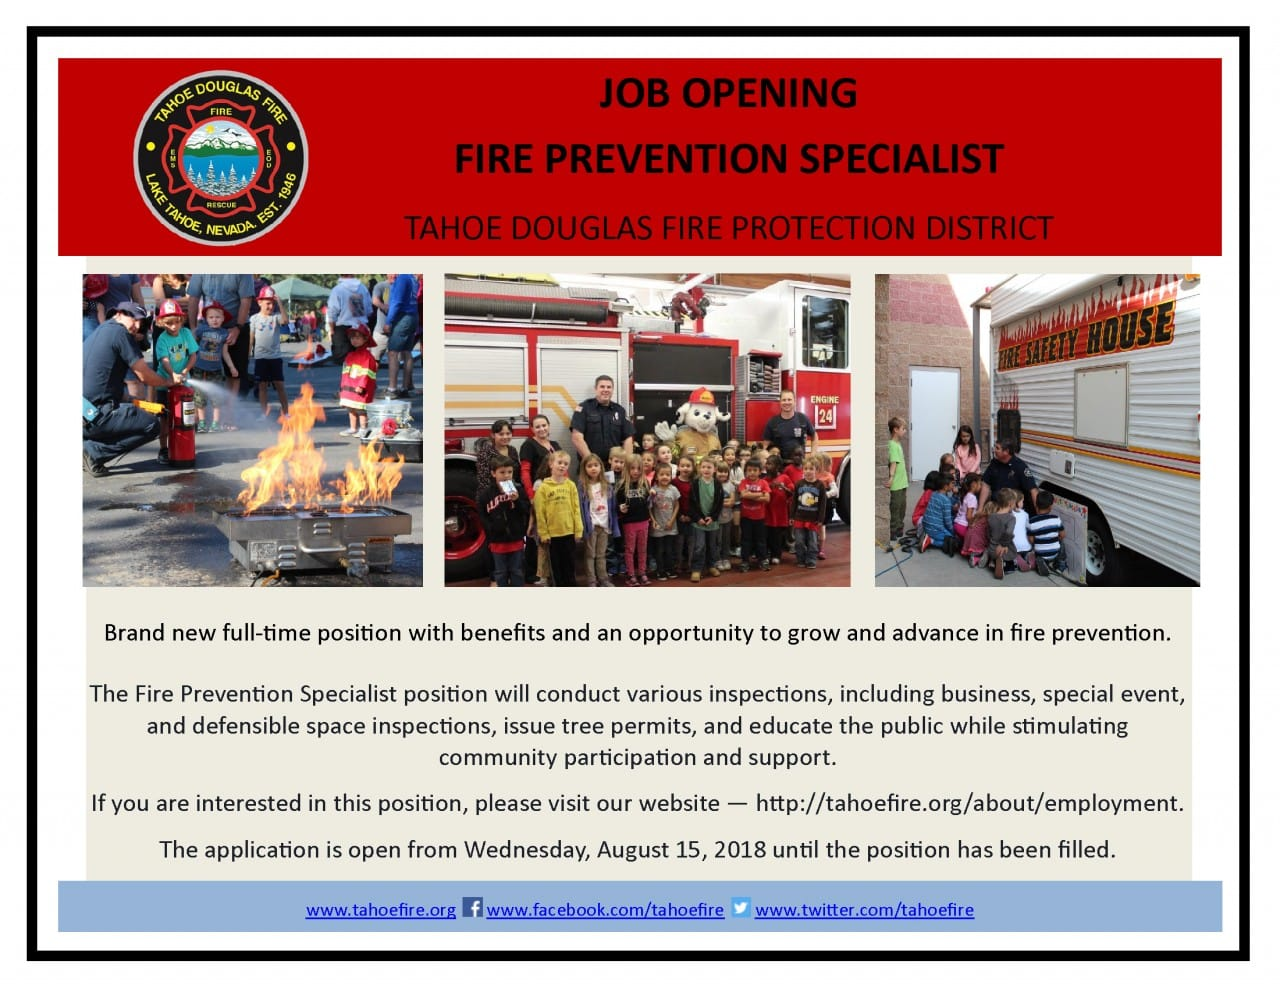 JOB OPENING - FIRE PREVENTION SPECIALIST